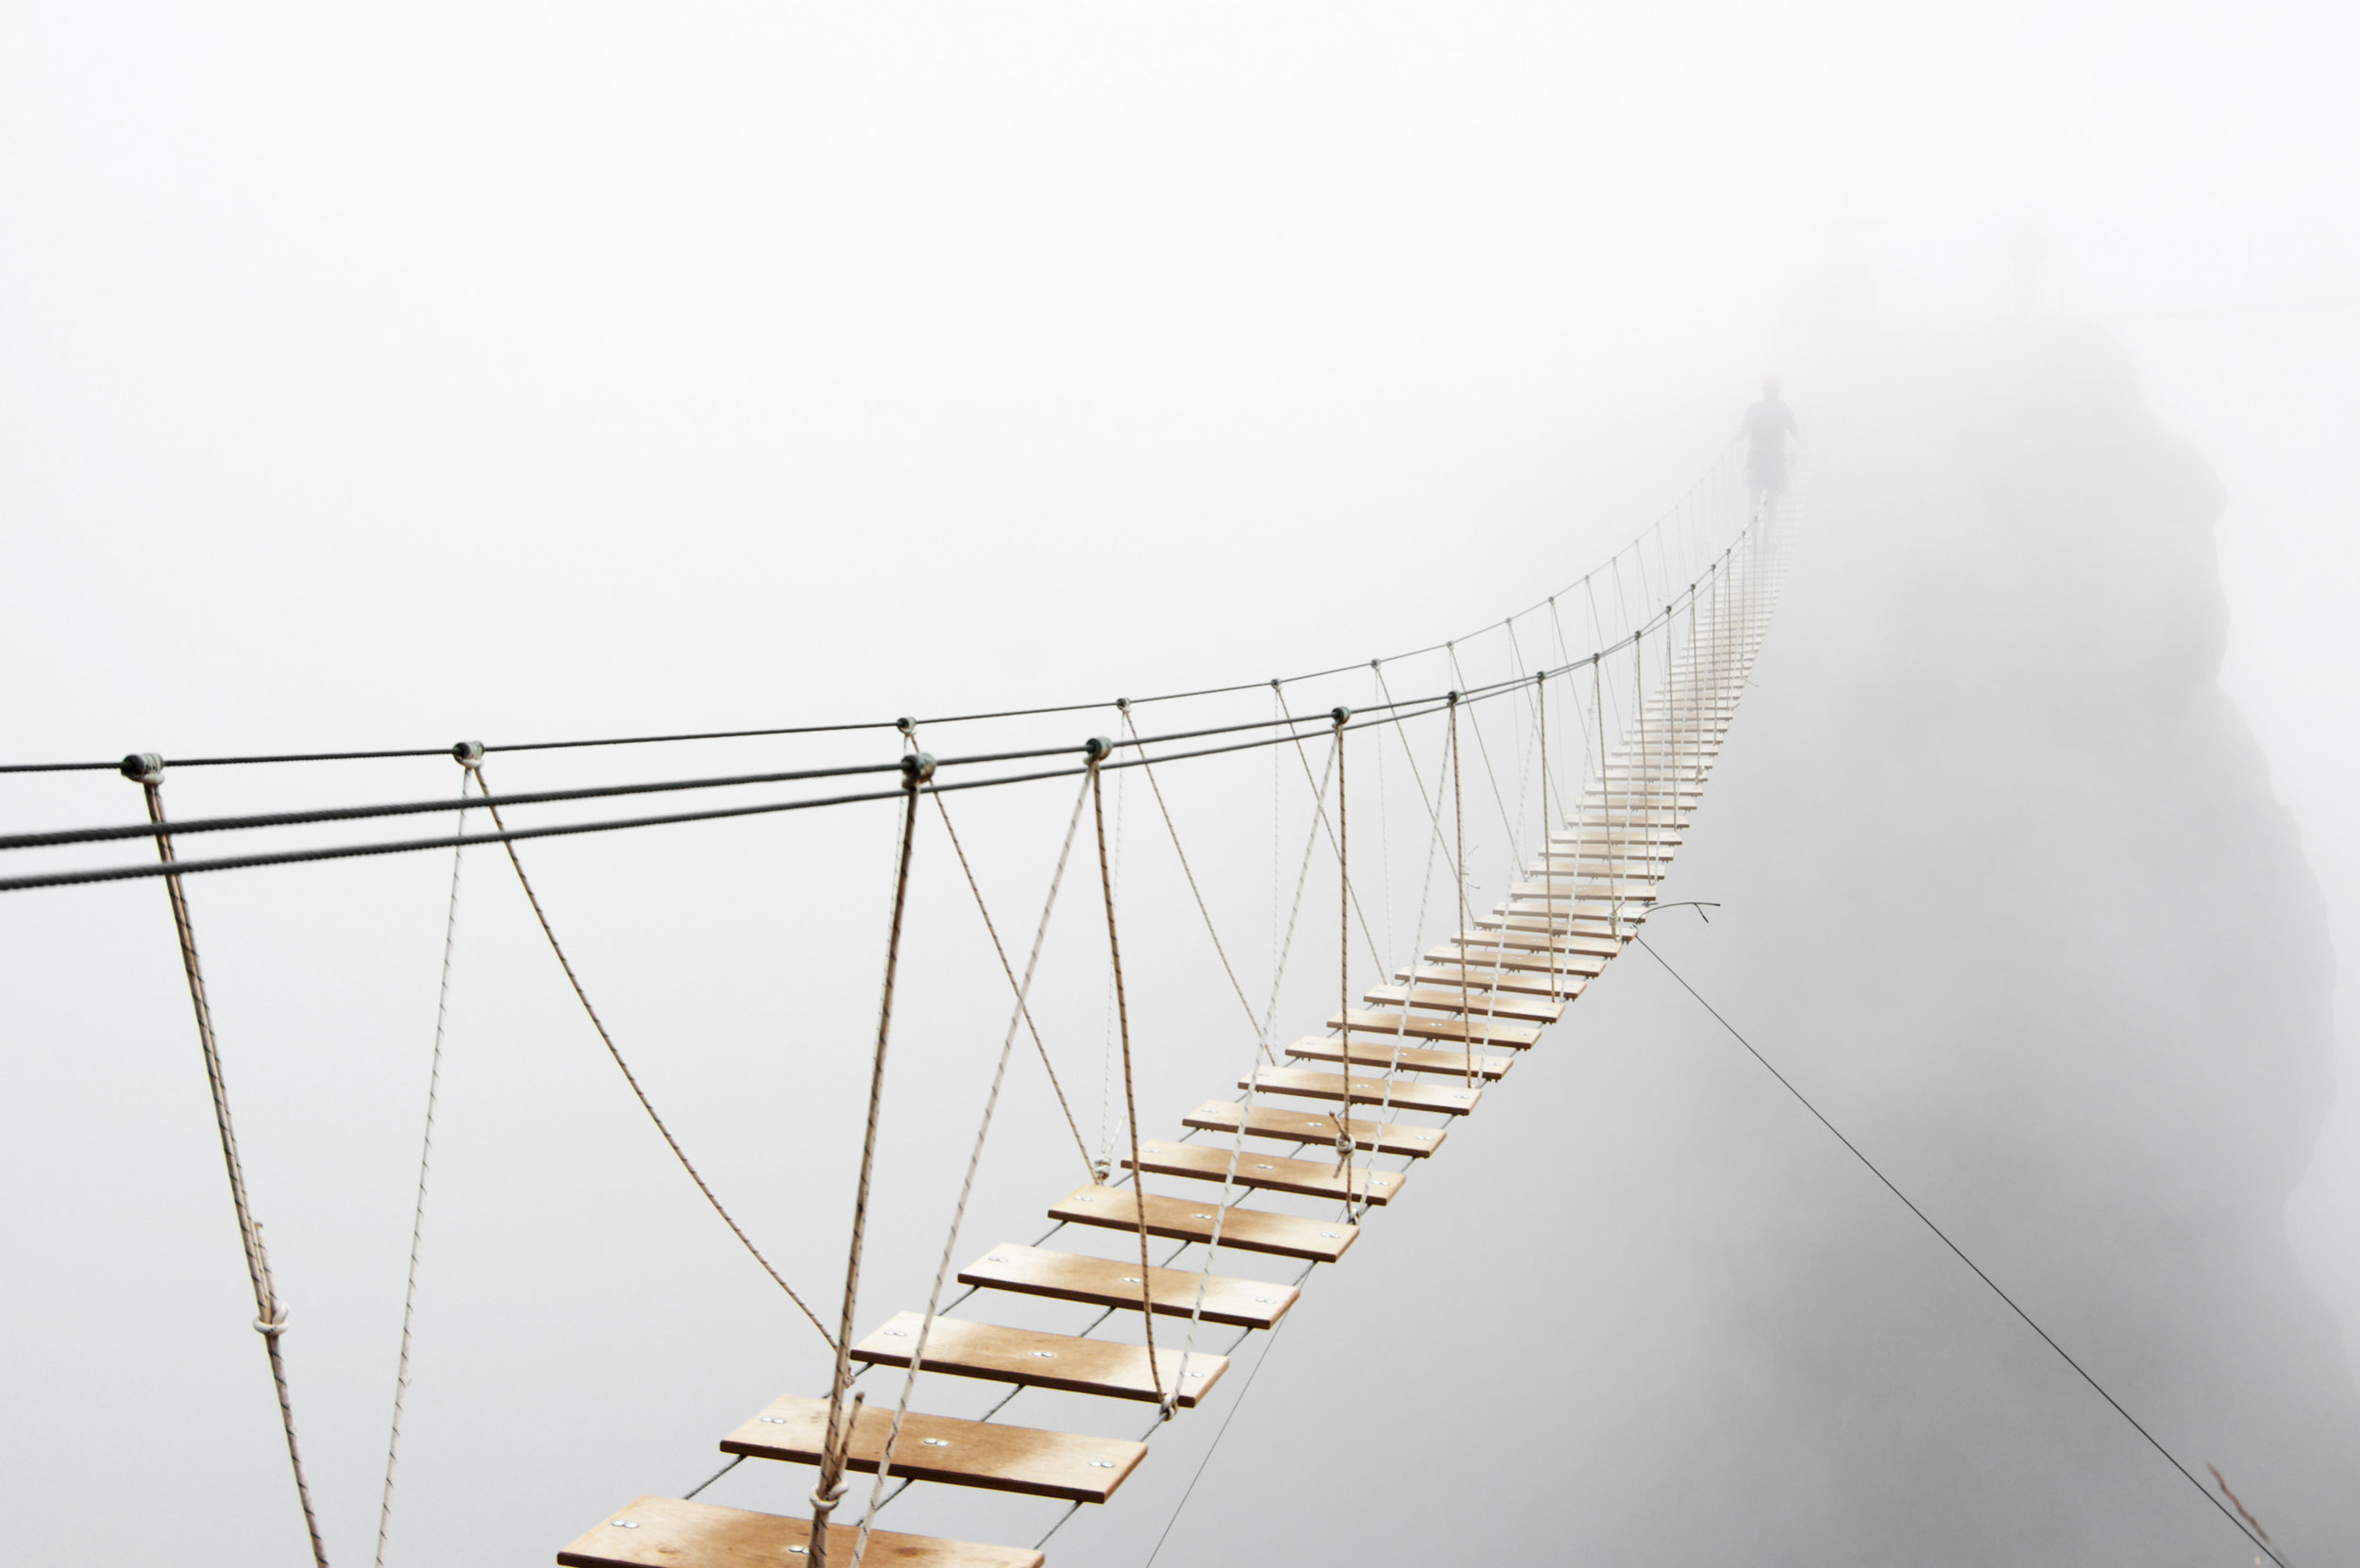 shutterstock_333013640_hanging bridge.jpg